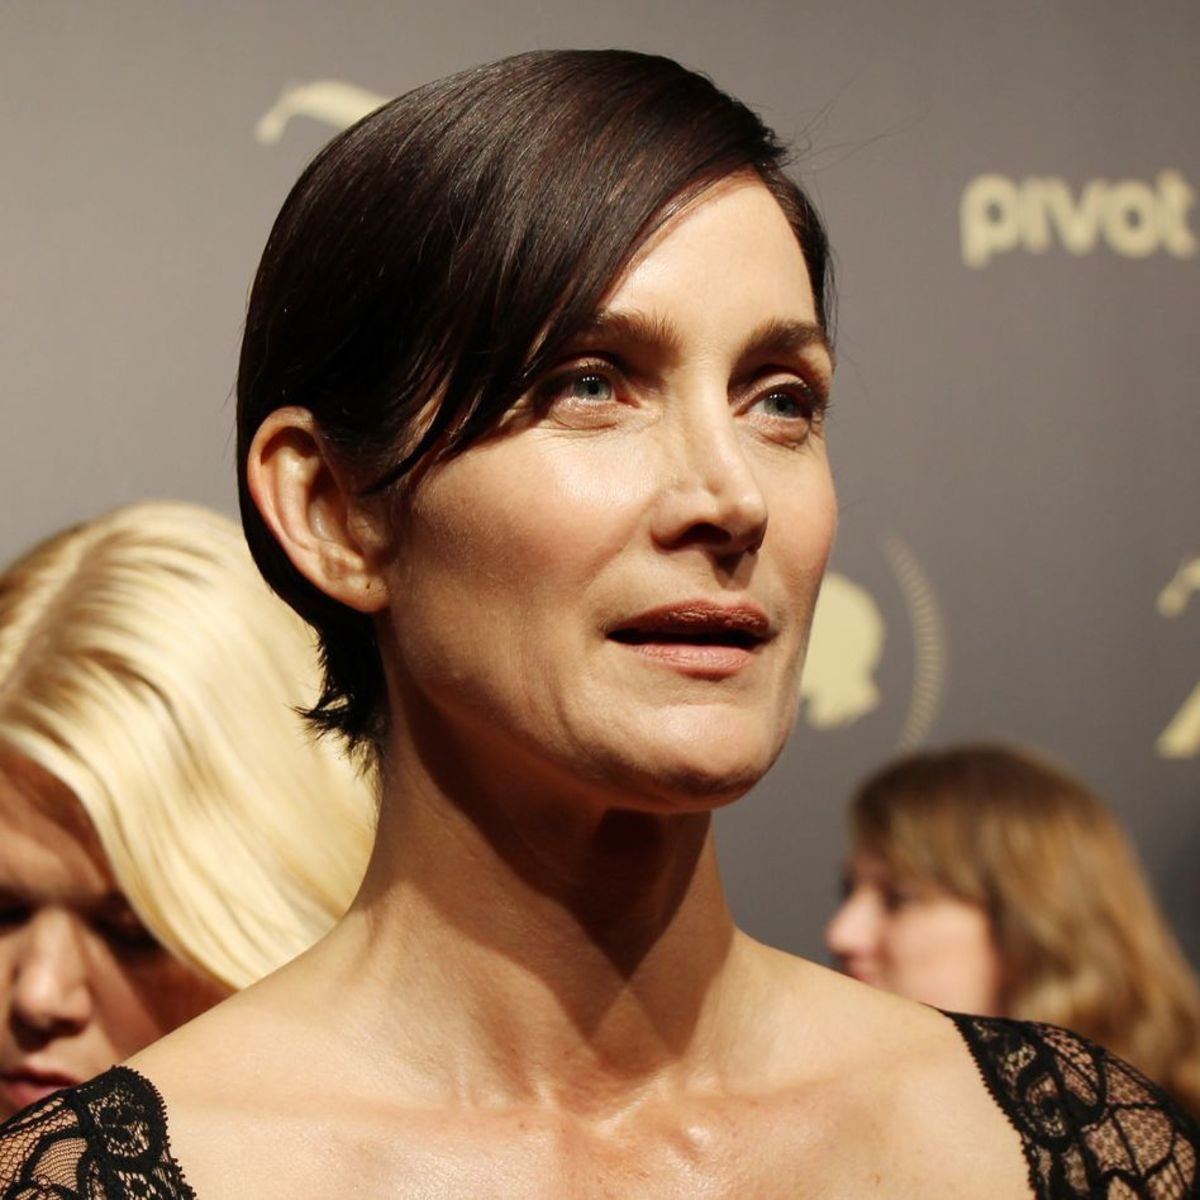 Carrie-Anne Moss, married since 1999